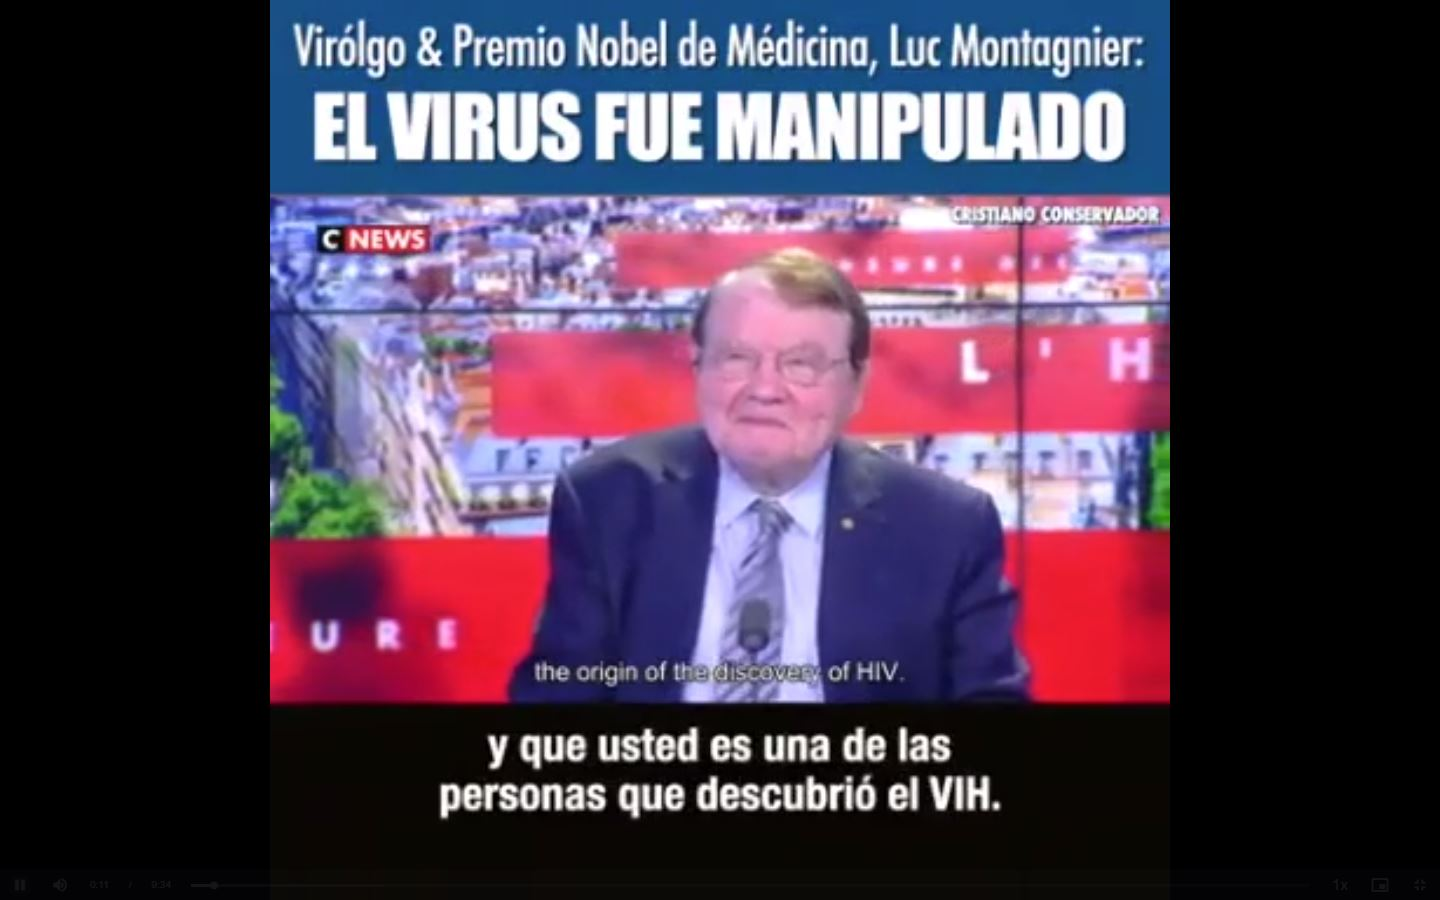 The virus was manipulated